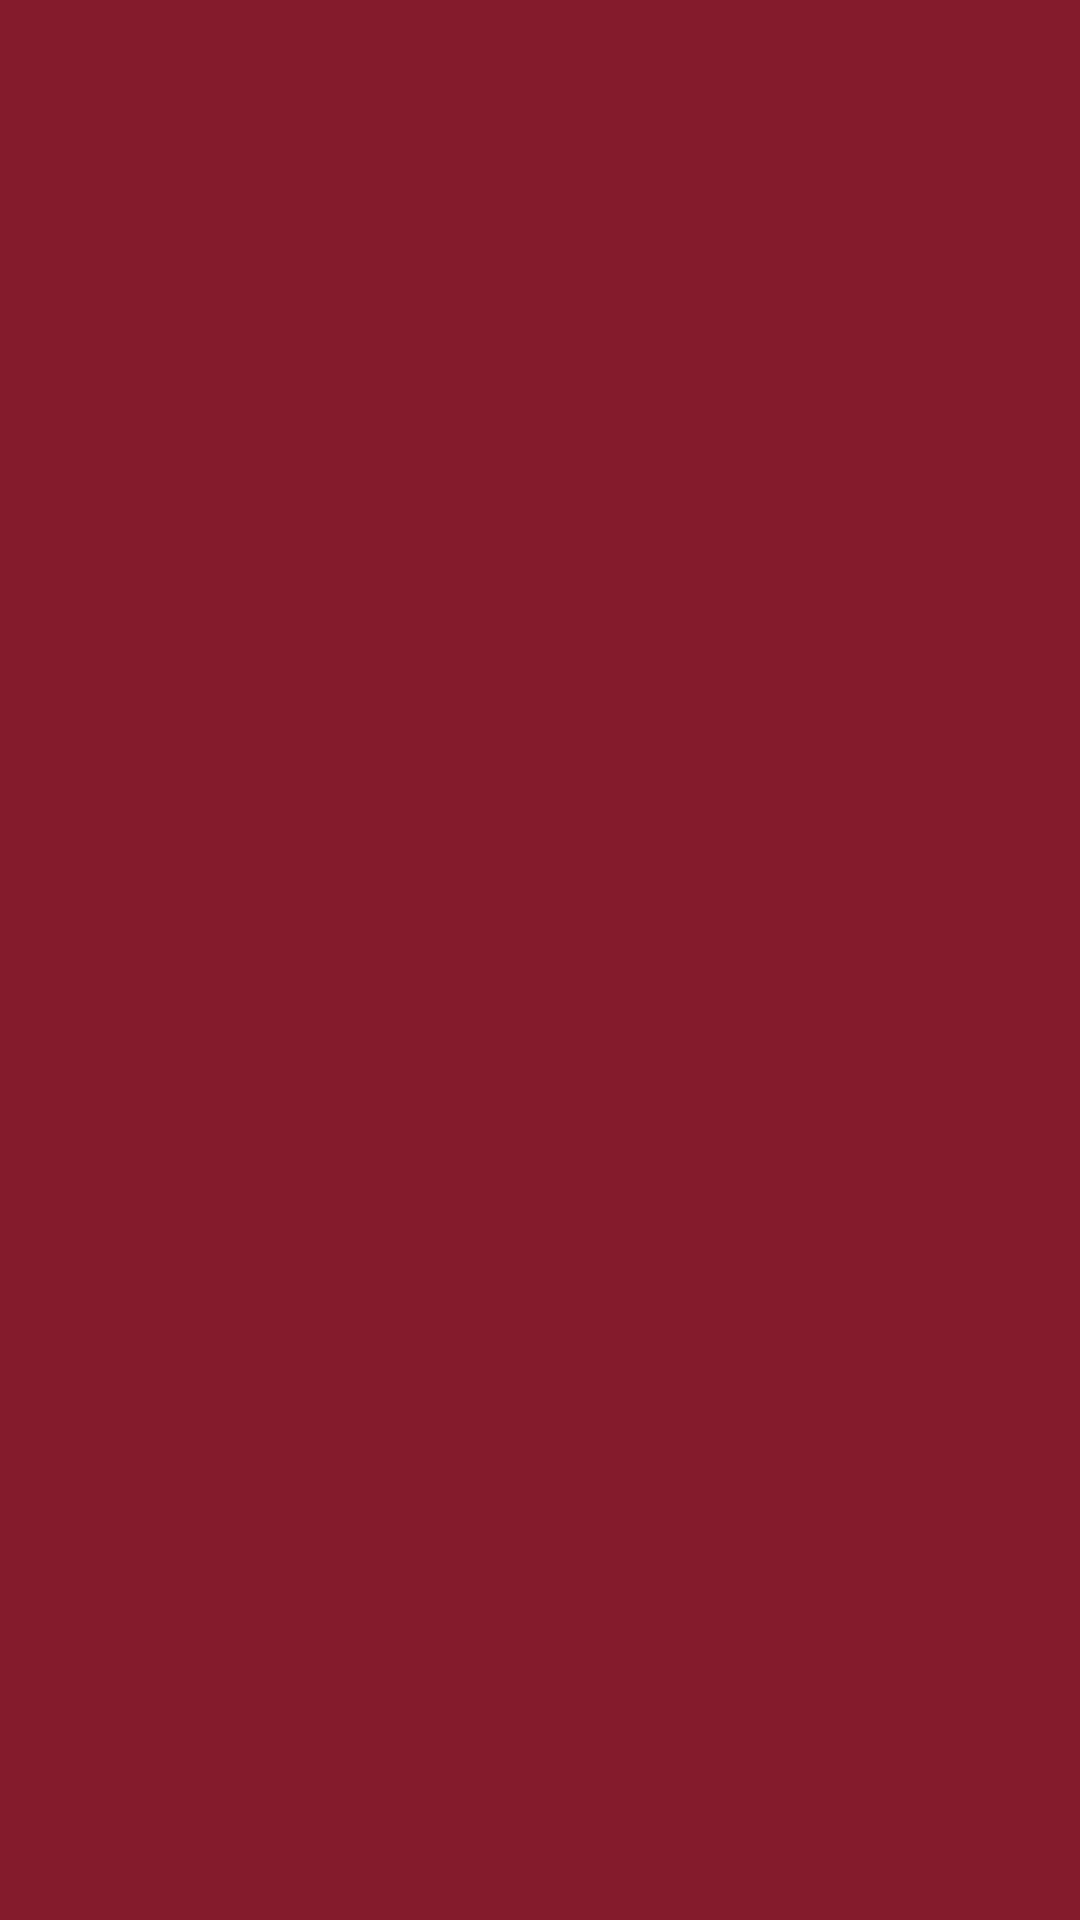 1080x1920 Antique Ruby Solid Color Background